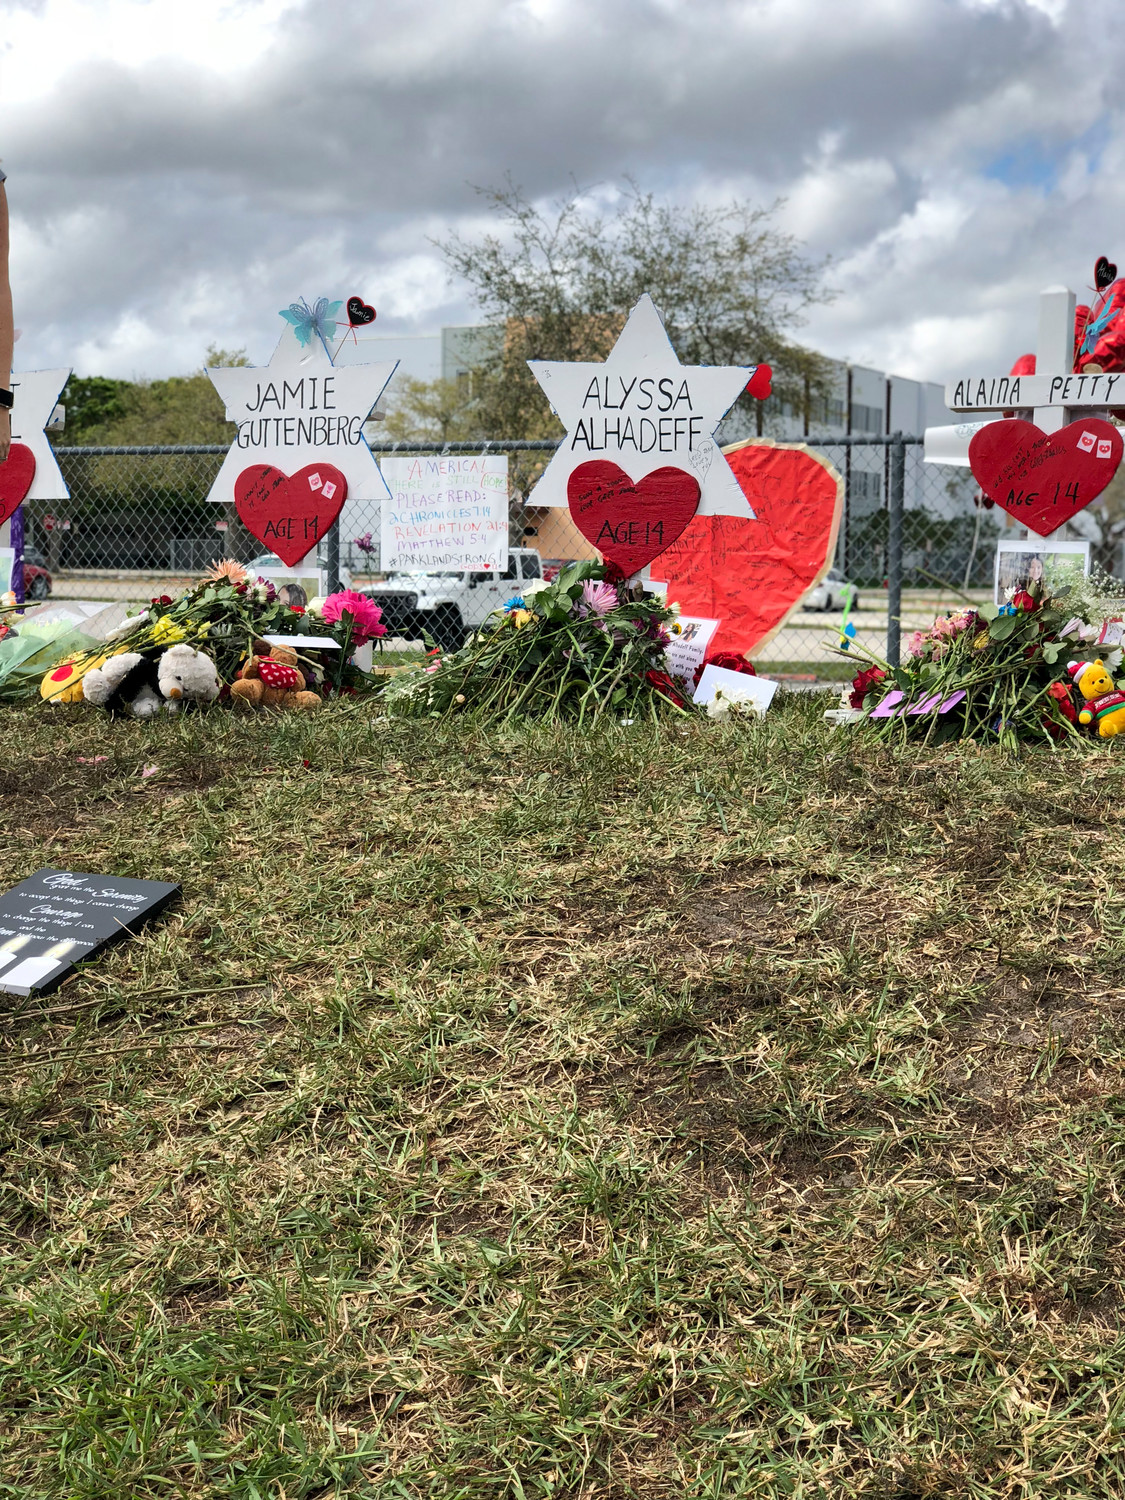 A vigil at Marjory Stoneman Douglas High School after the shooting on Feb. 14 in which 17 people died.